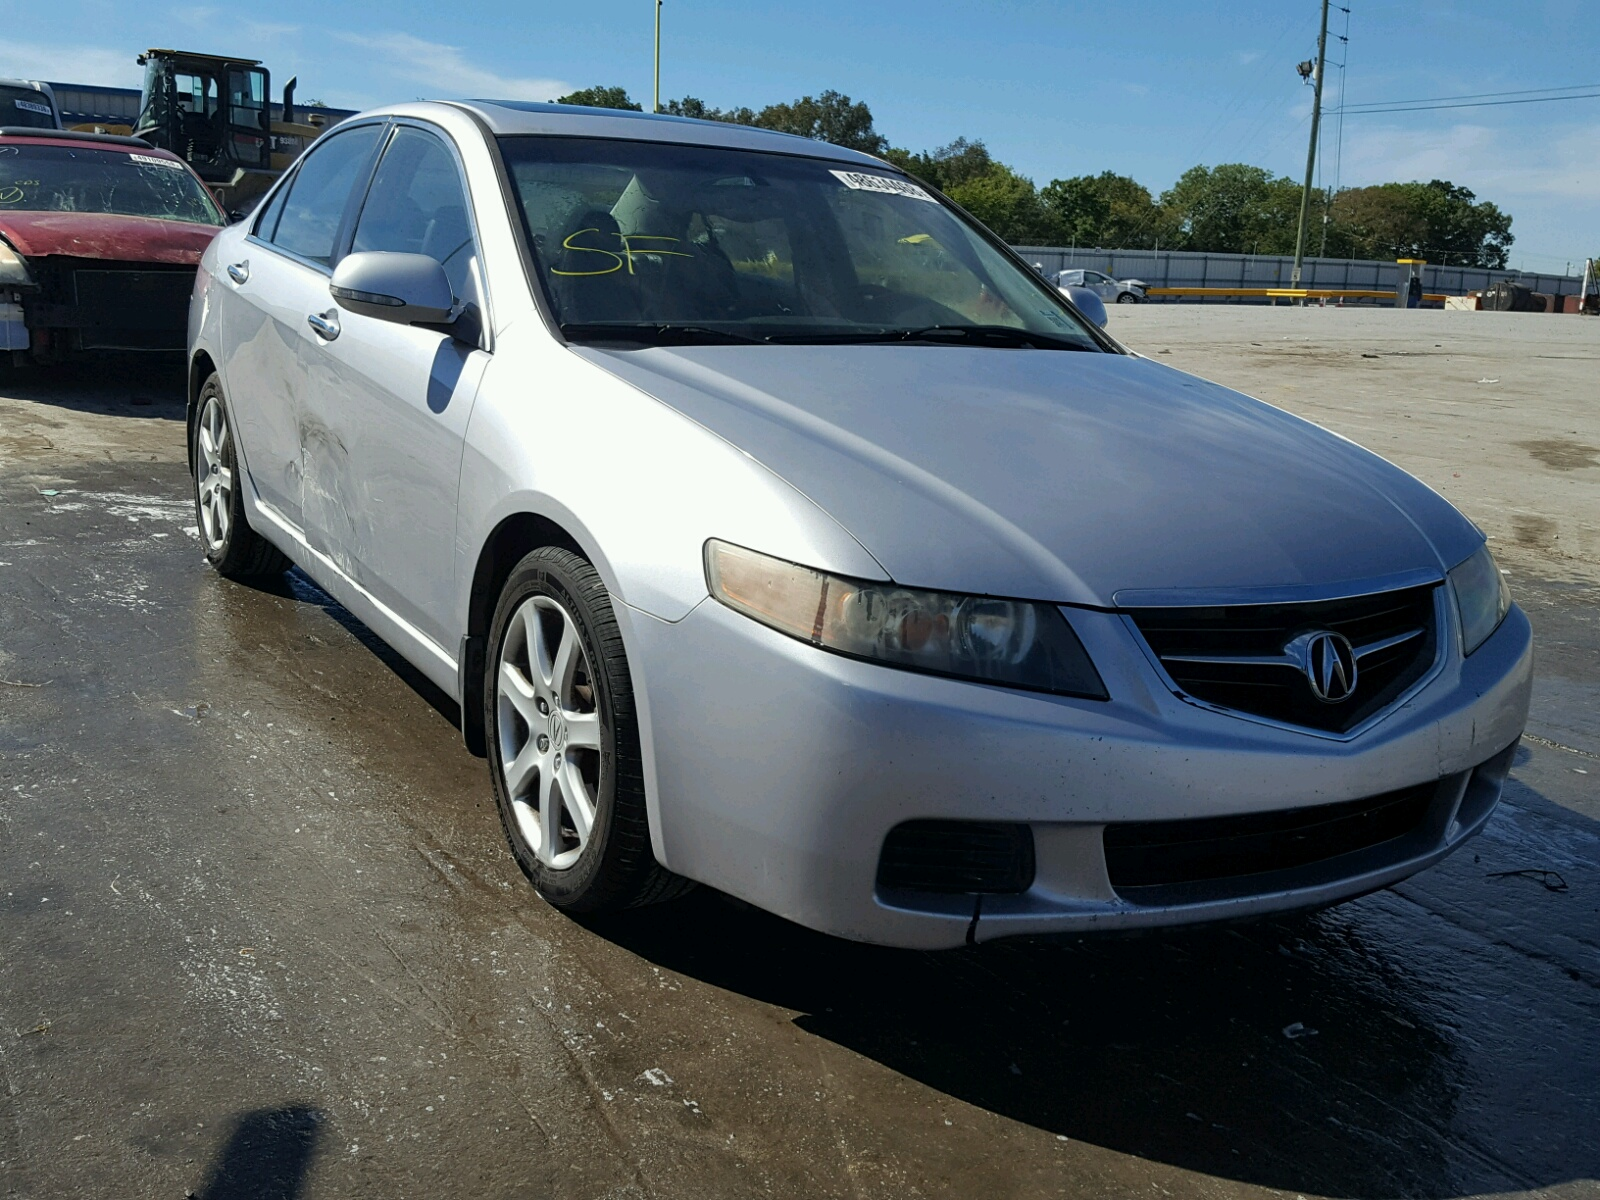 2005 Acura Tsx 2 4L for Sale at Copart Auto Auction